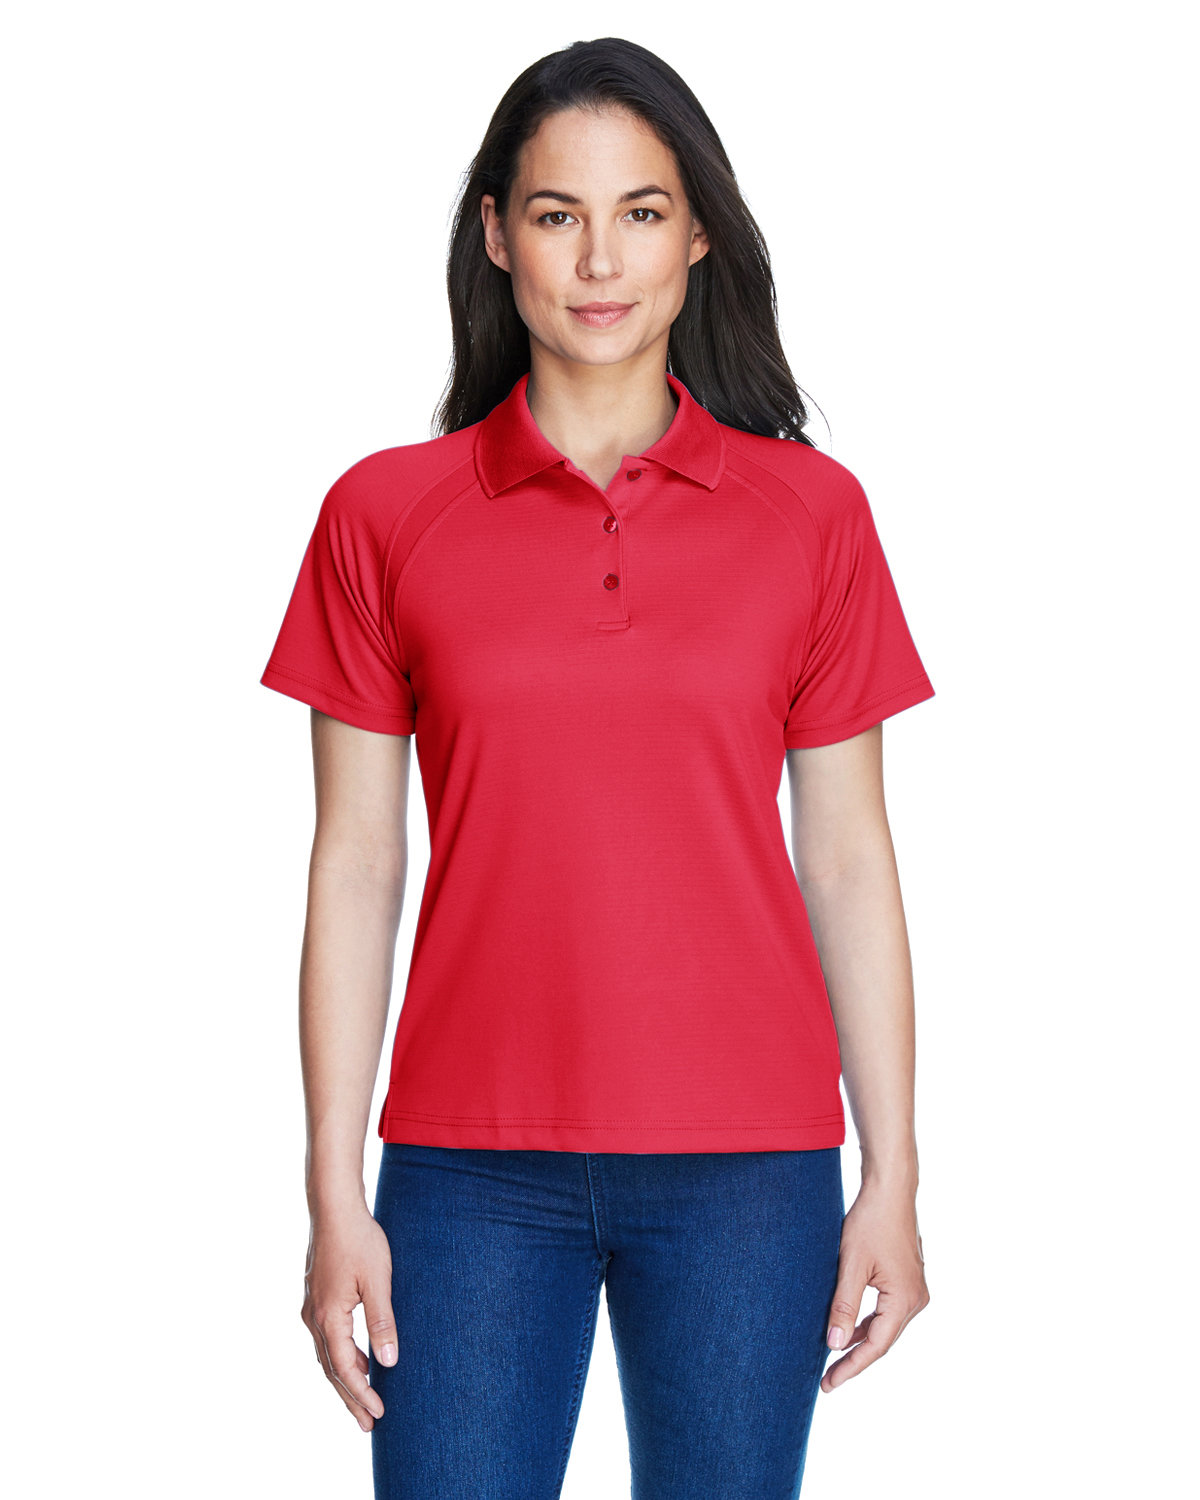 Extreme Ladies' Eperformance™ Ottoman Textured Polo CLASSIC RED